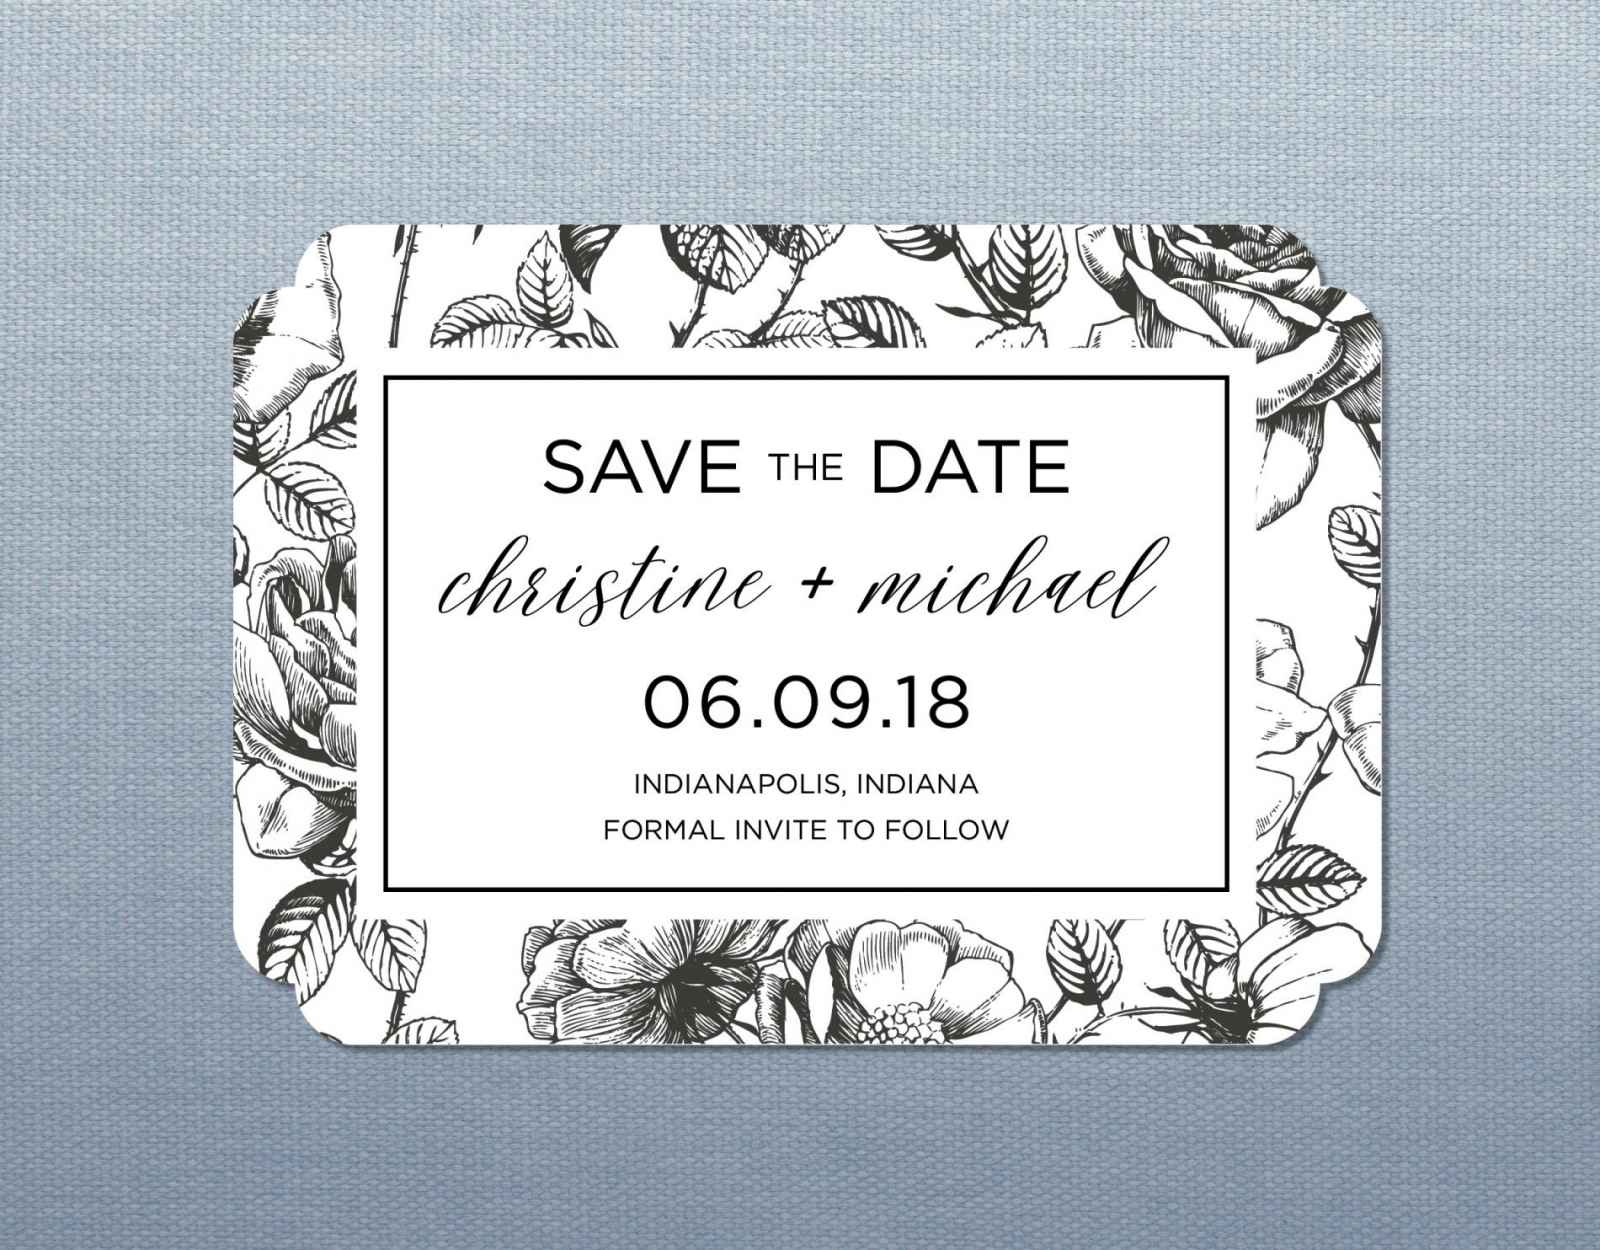 Wedding stationery basics save the dates weddingday magazine also since save the dates are still a somewhat new idea it will help all your guests understand that this is not the formal invitation stopboris Image collections